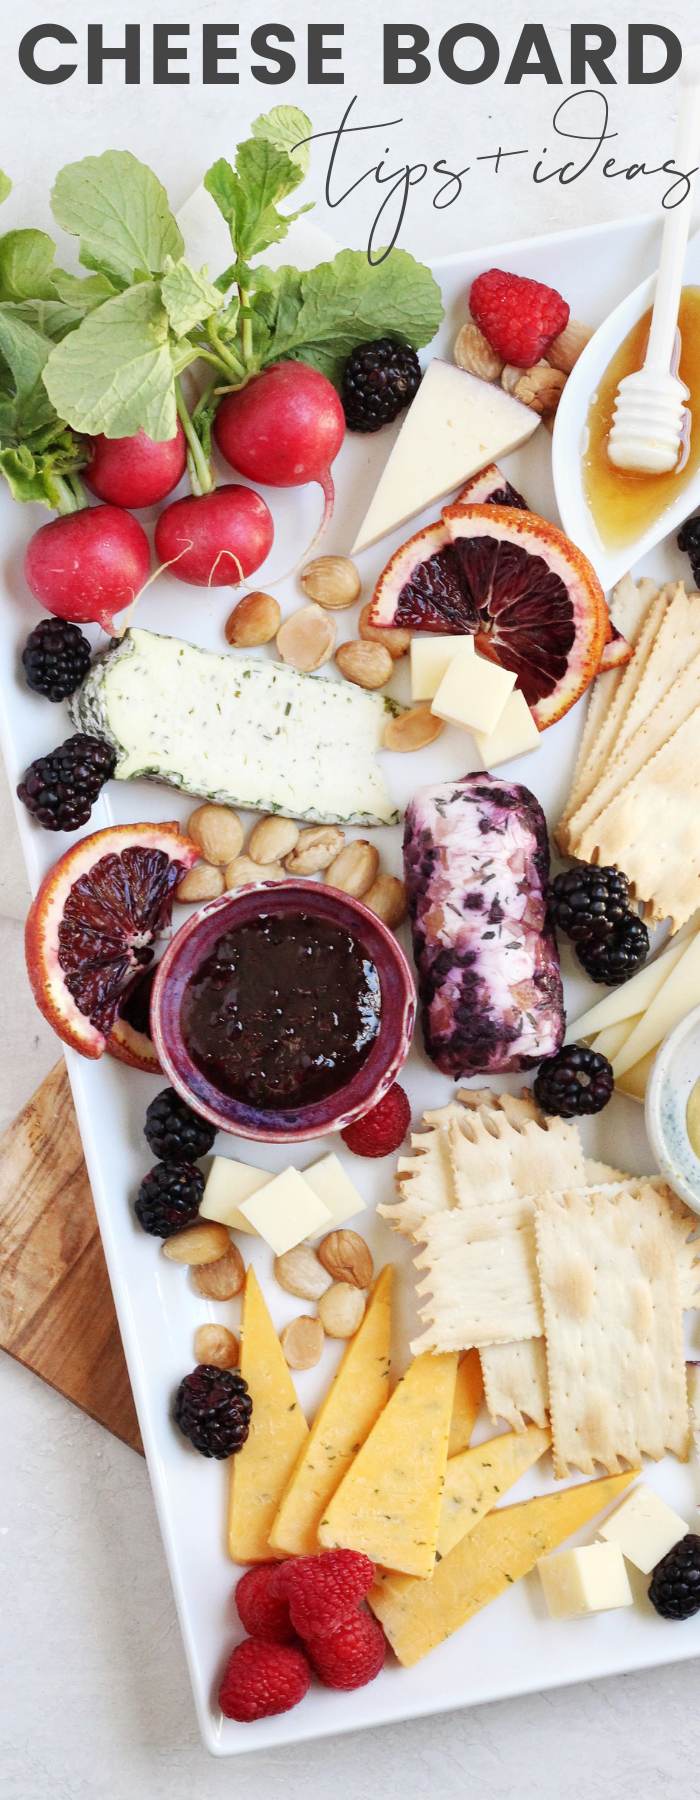 Cheese Board Ideas from a Cheesemonger